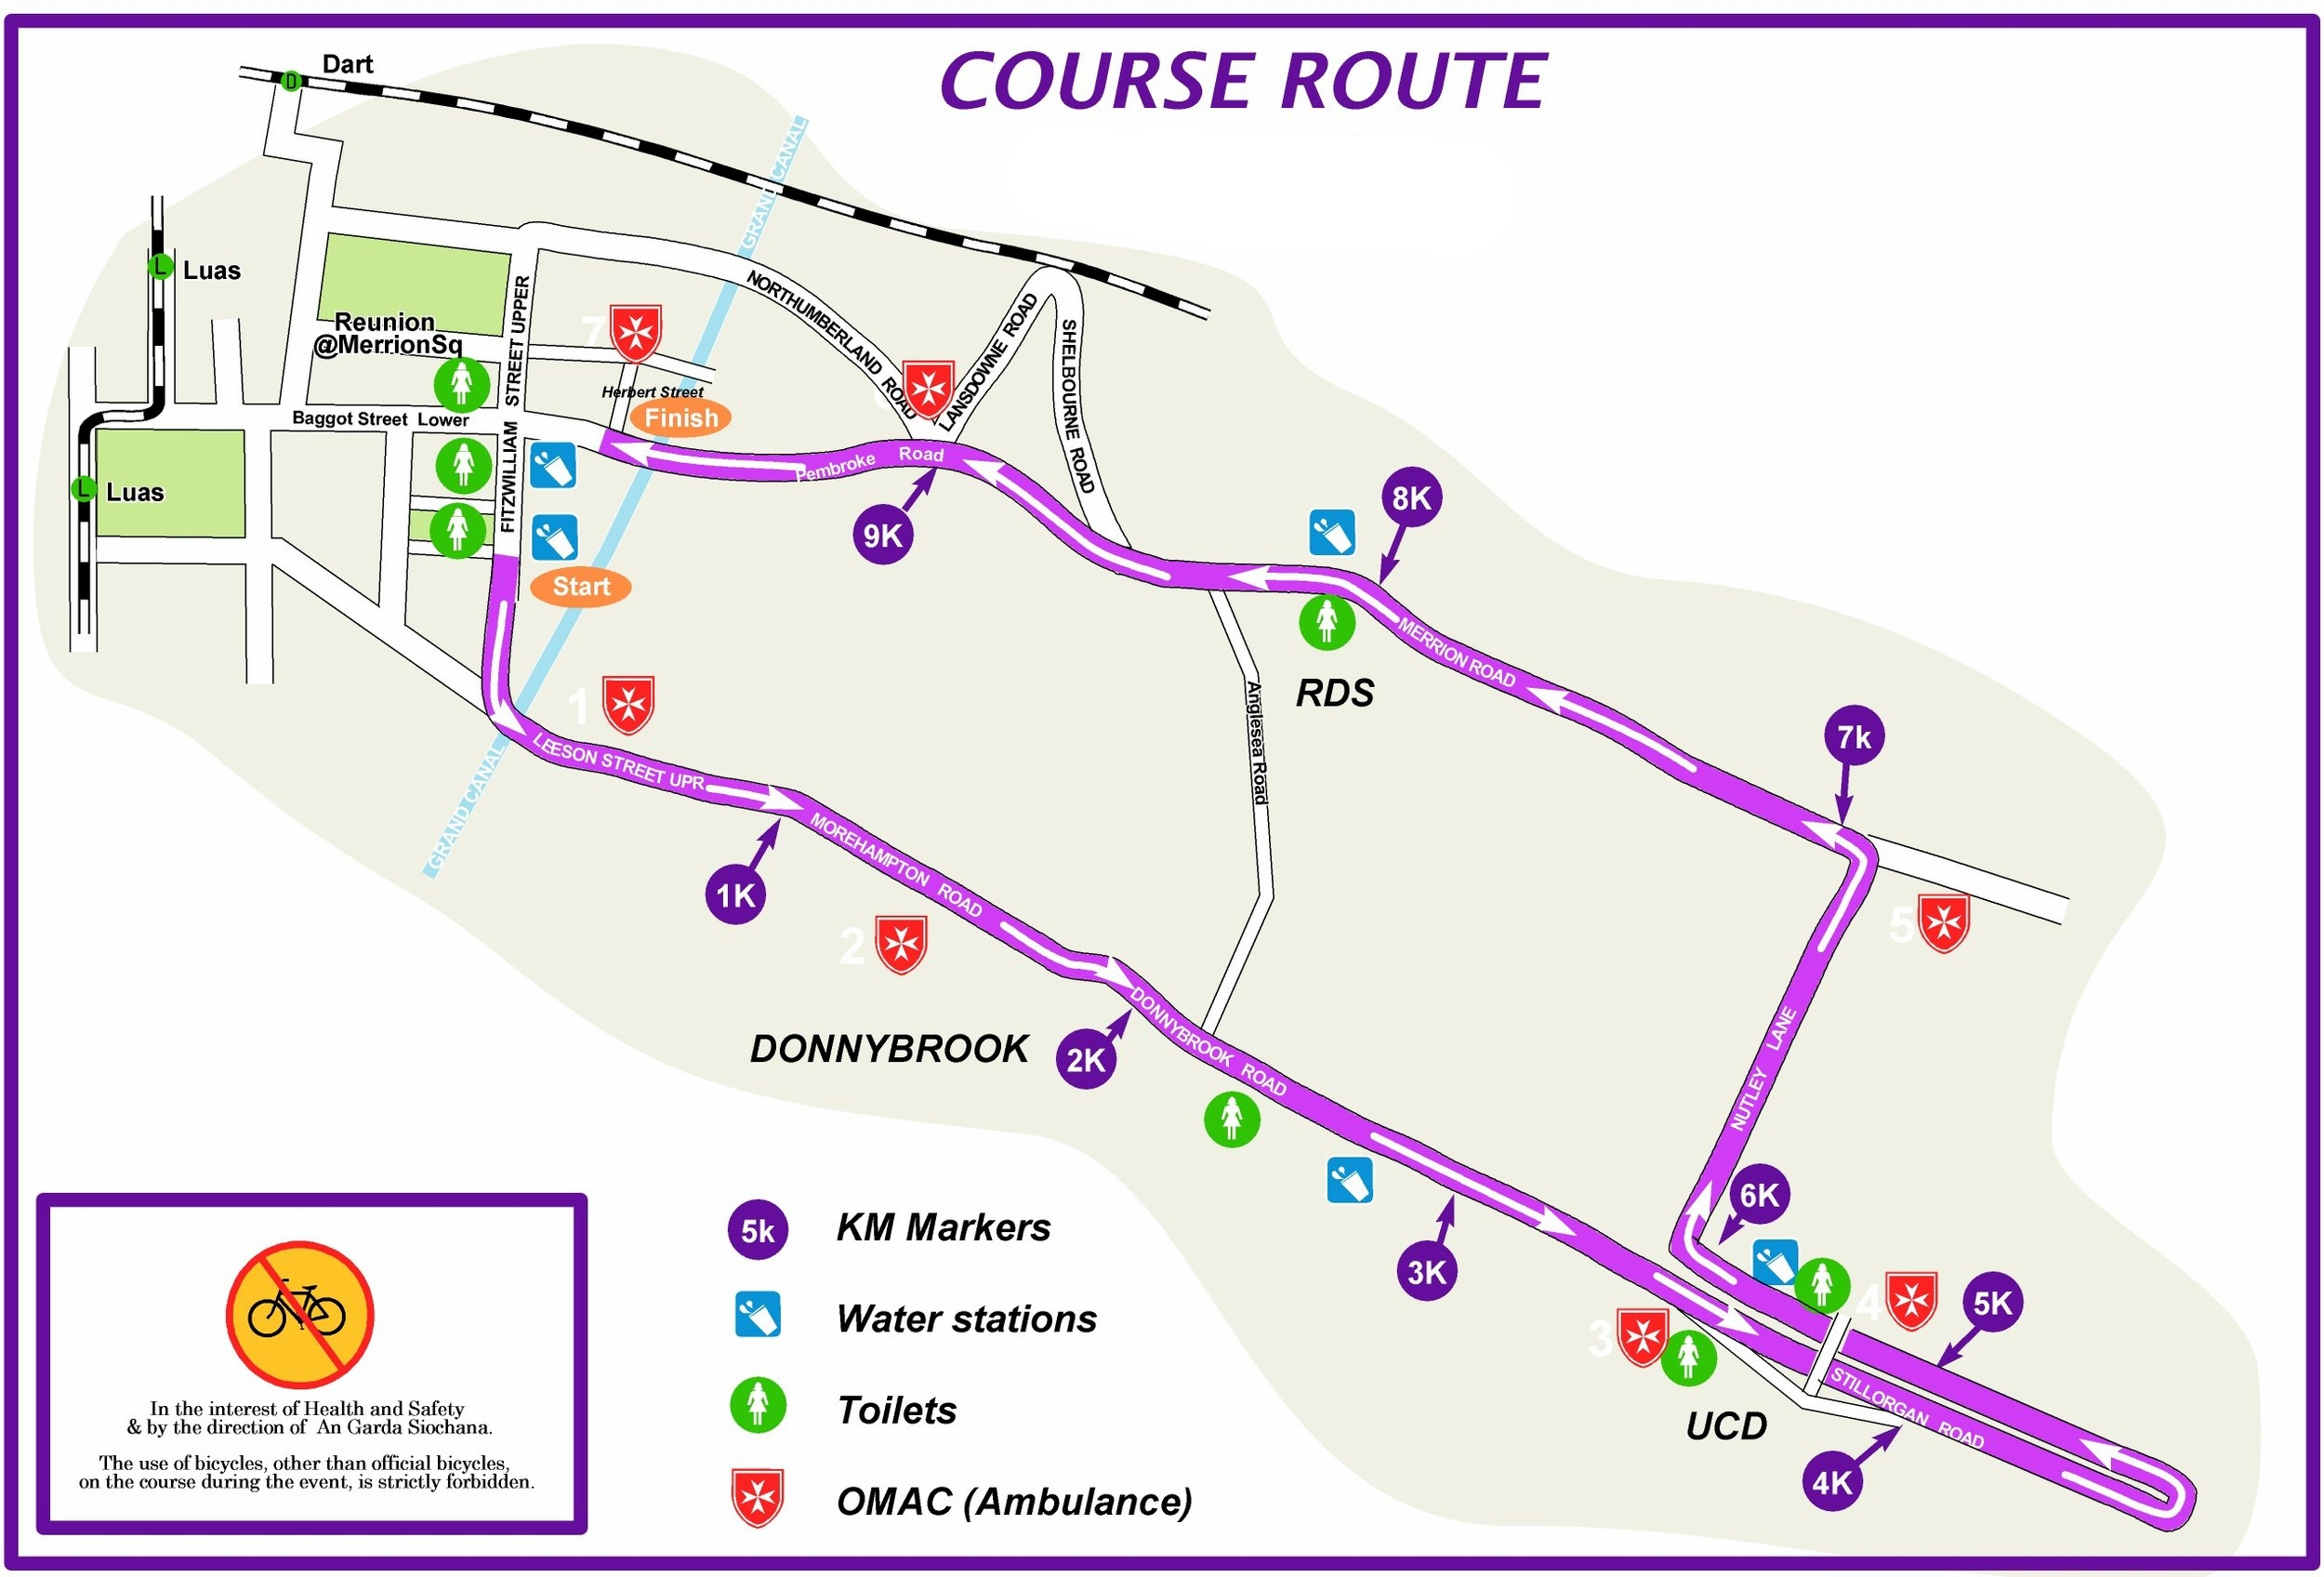 Course_Route_2019.jpg